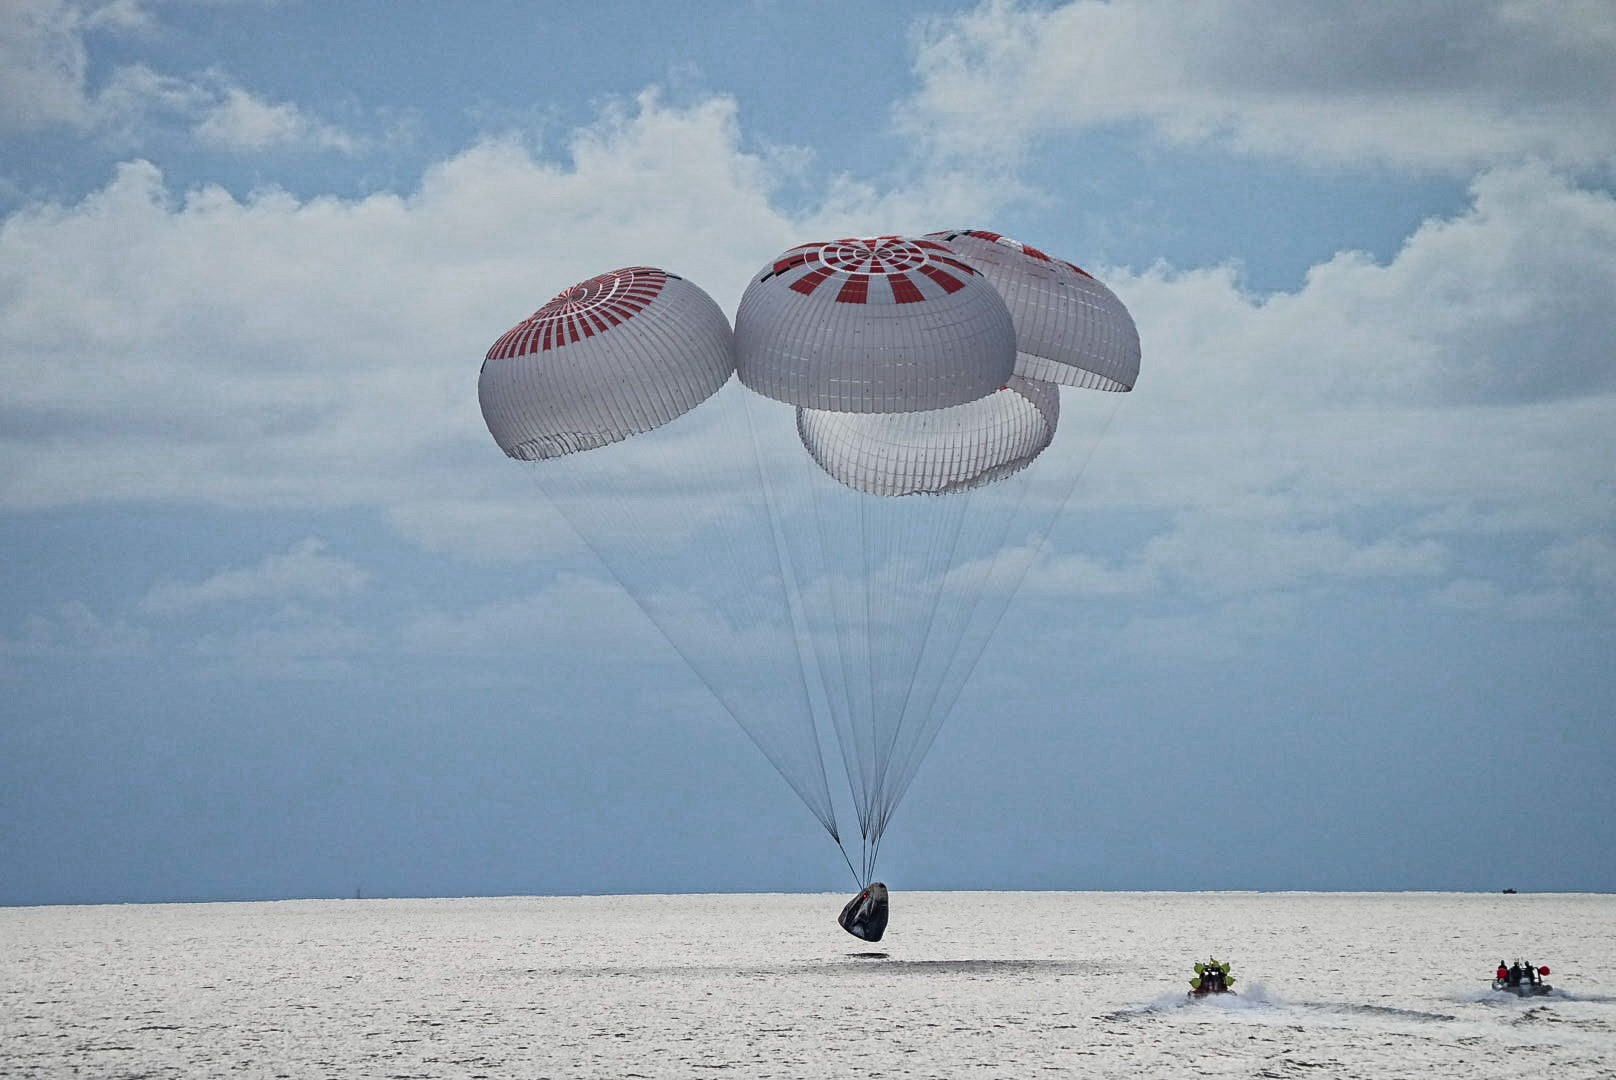 SpaceX Inspiration4 mission splashes down in first Atlantic Ocean landing -  CNET